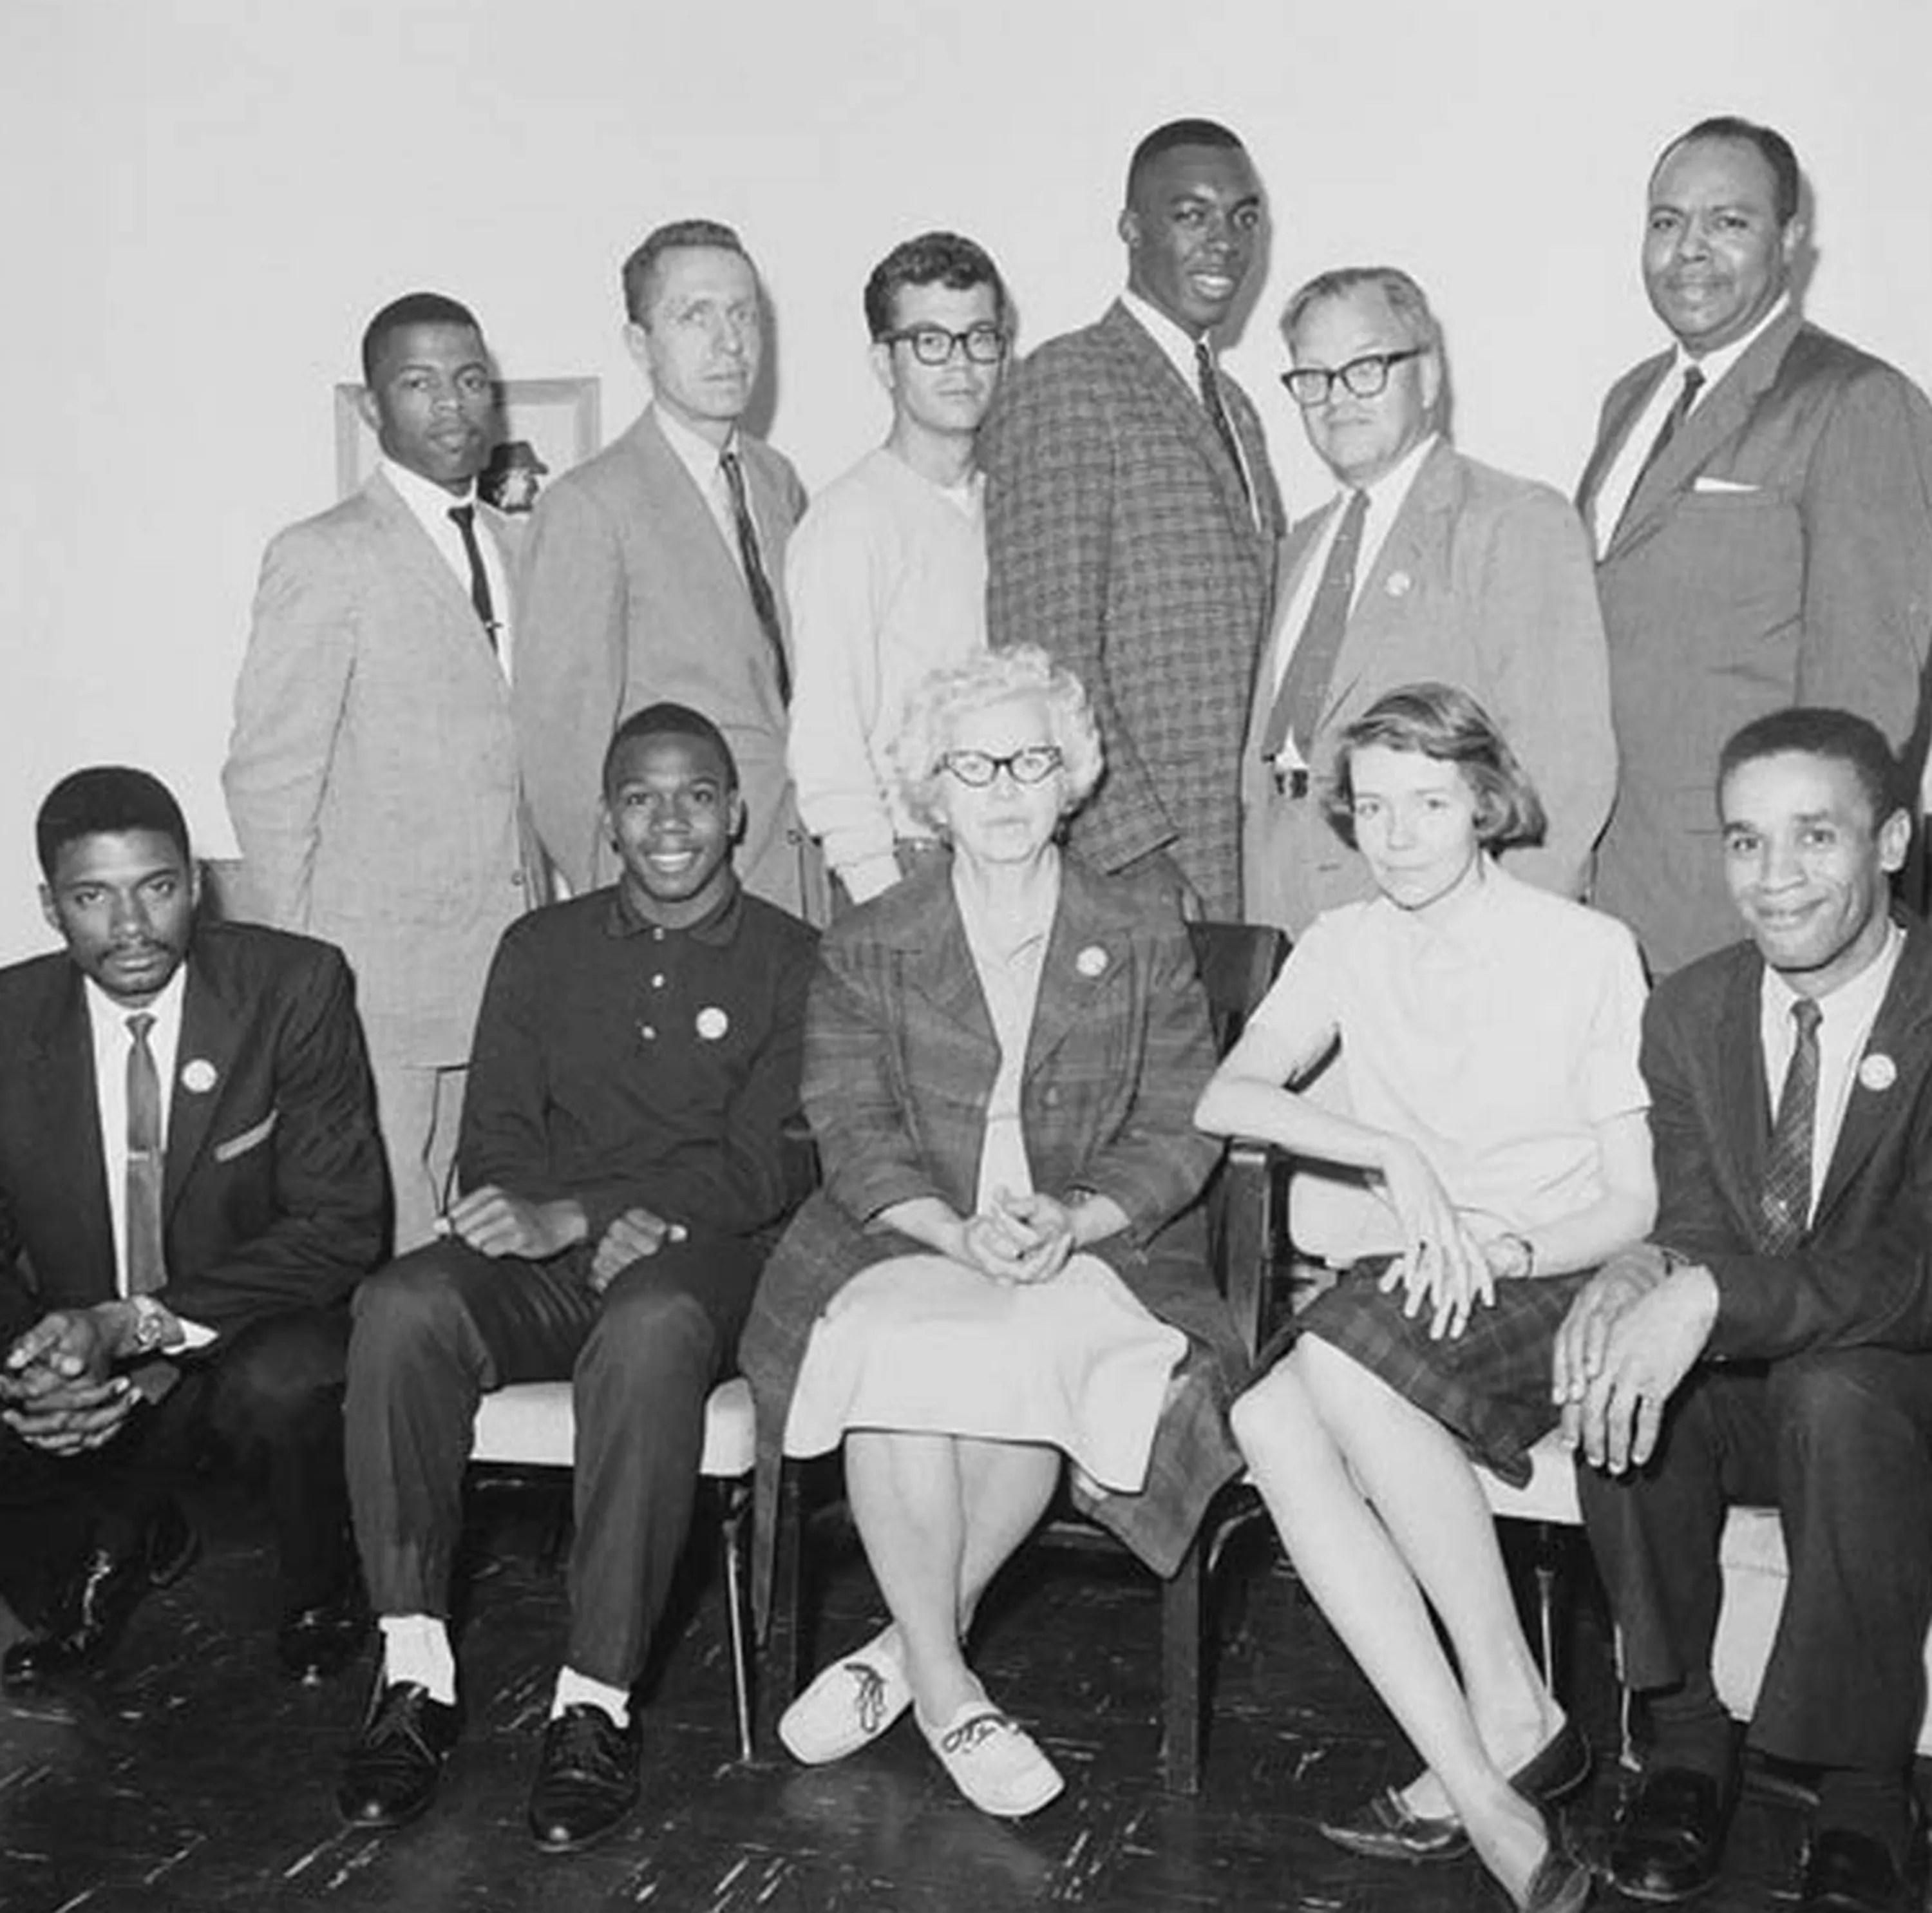 Eleven of the 13 original Freedom Riders sponsored by the Congress of Racial Equality in 1961.